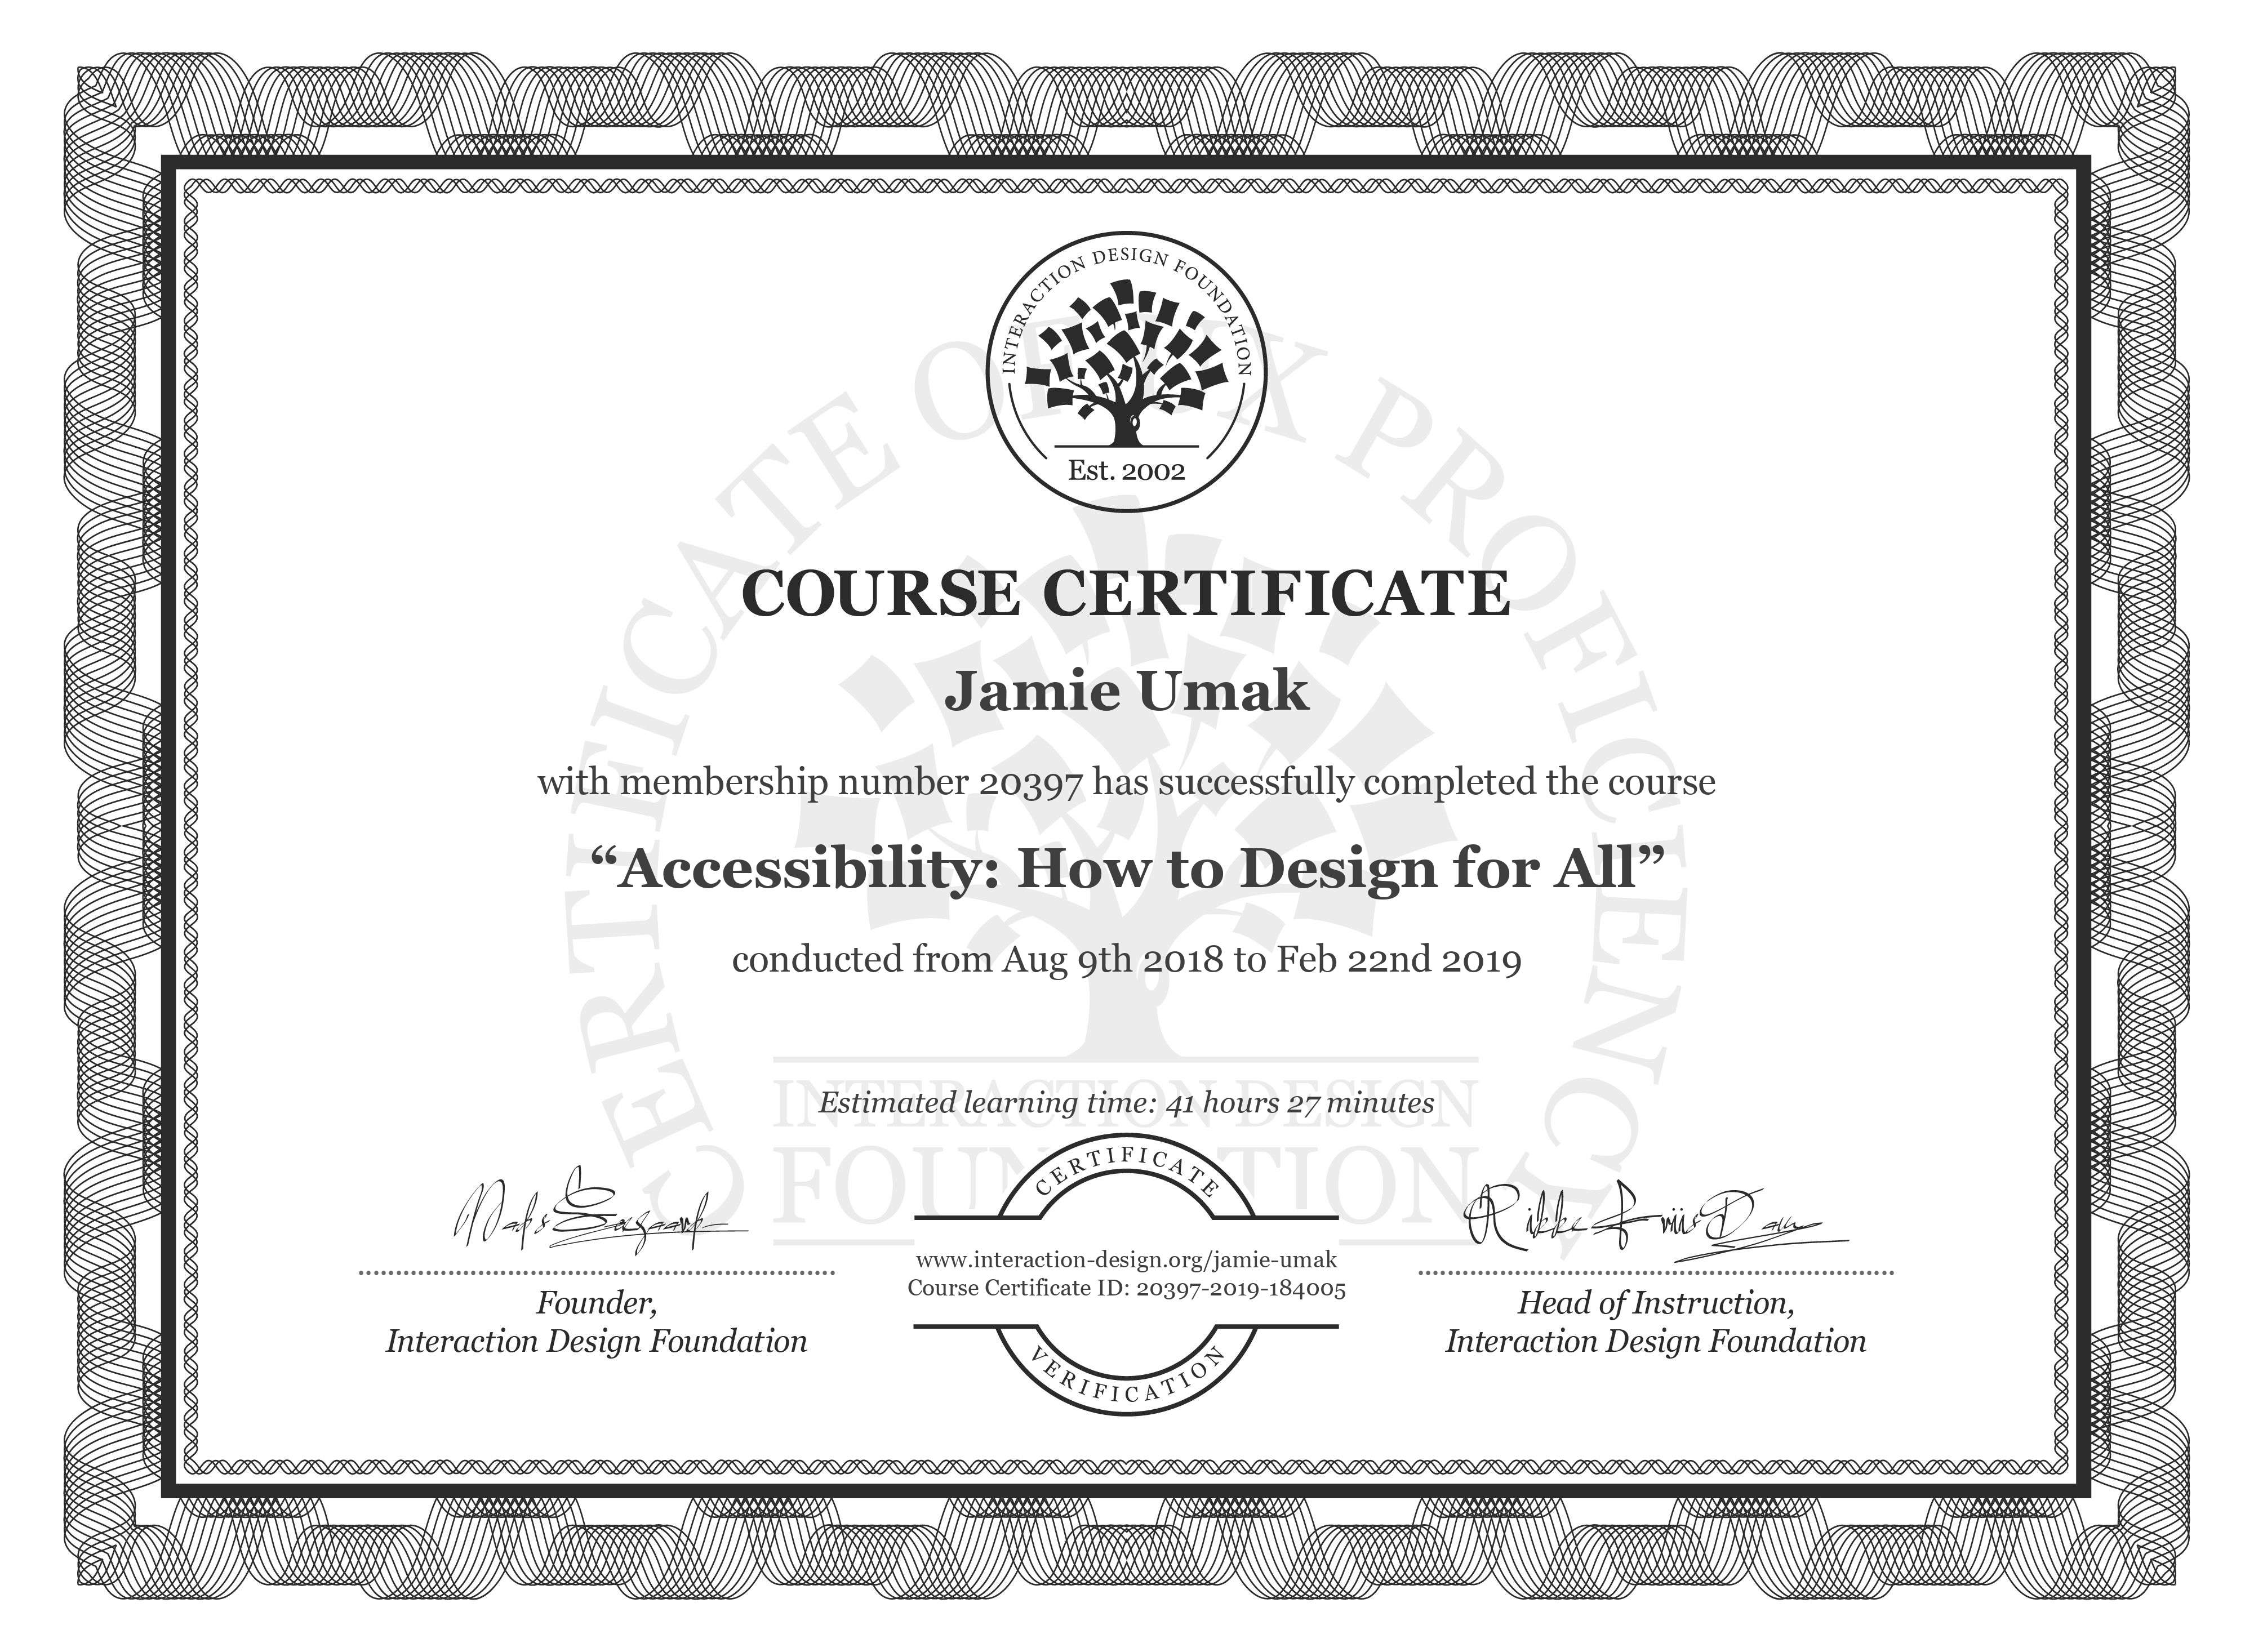 Jamie Umak: Course Certificate - Accessibility: How to Design for All